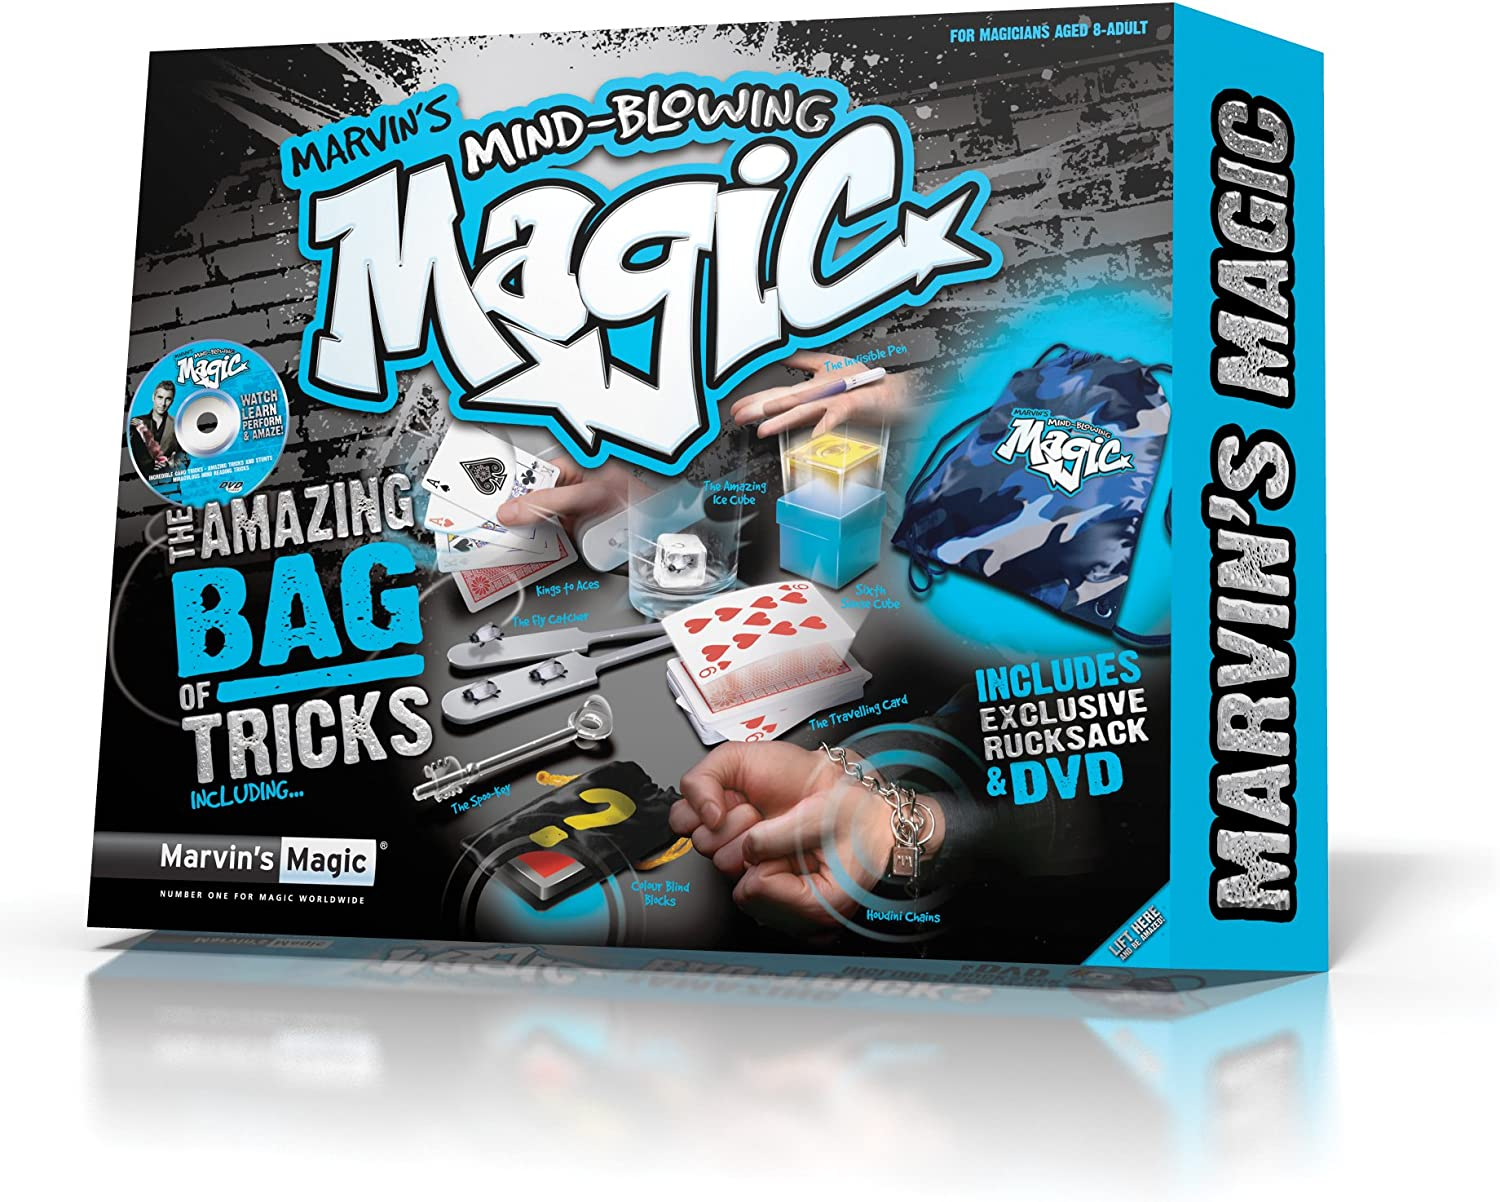 Austin Mall Marvin's Magic Free Shipping New Most Amazing of Tricks Bag